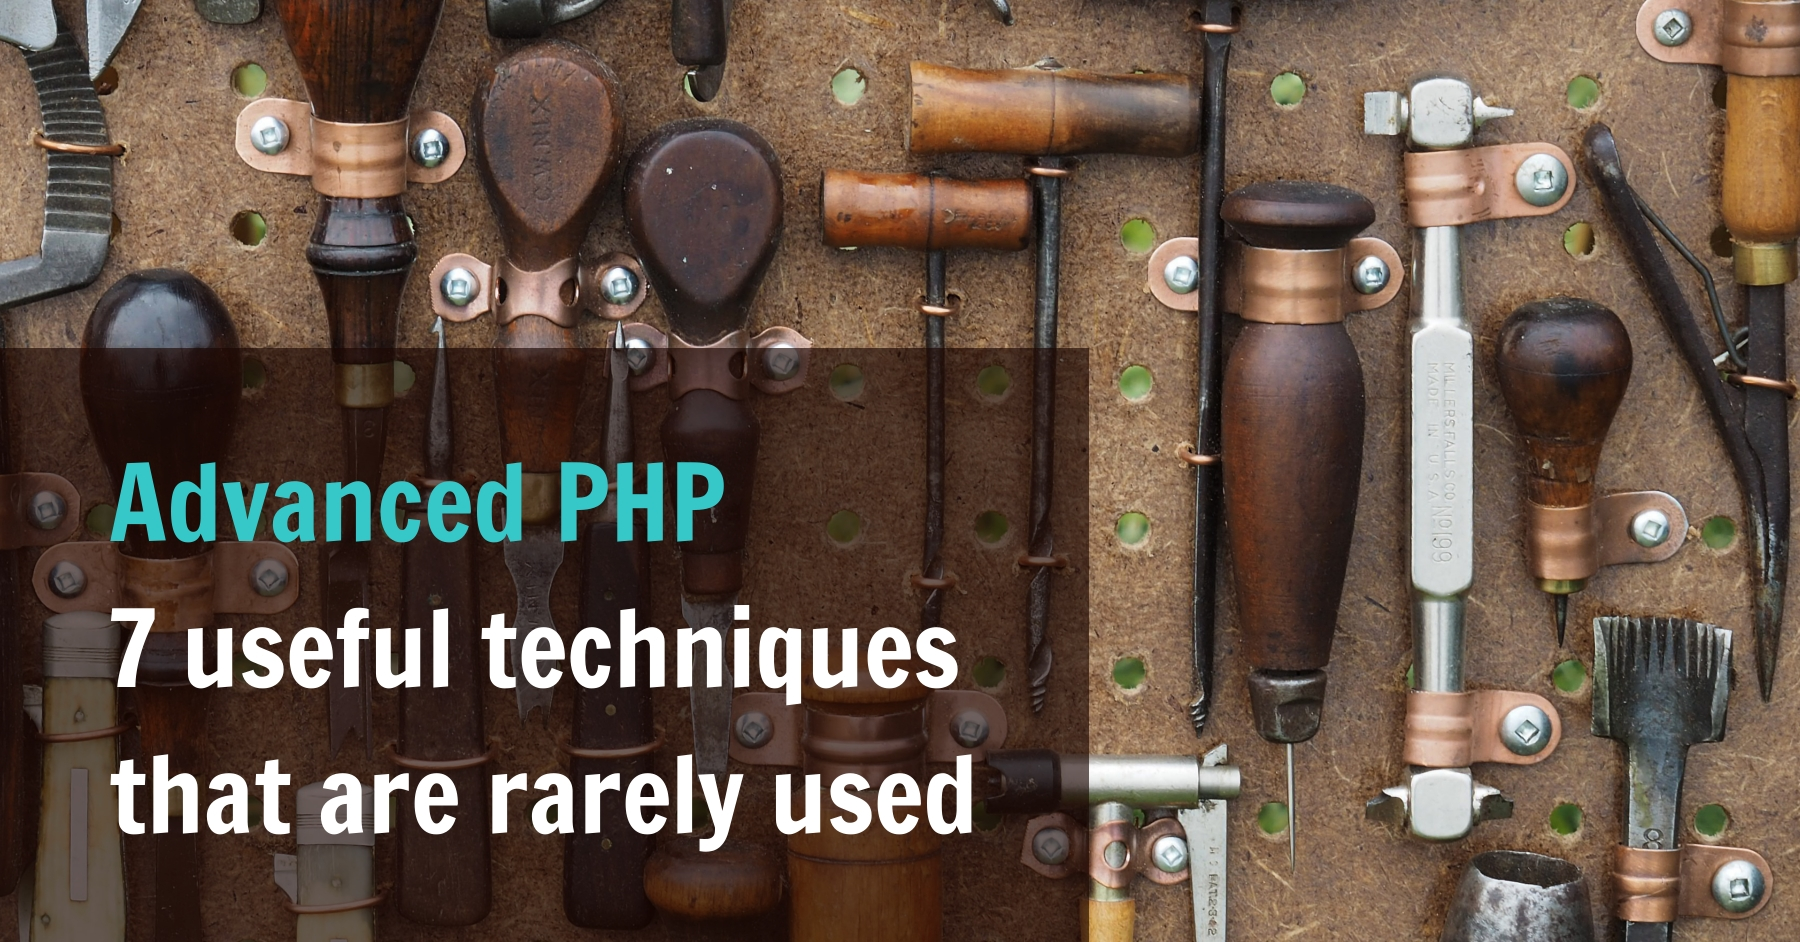 Advanced PHP: 7 useful techniques that are rarely used